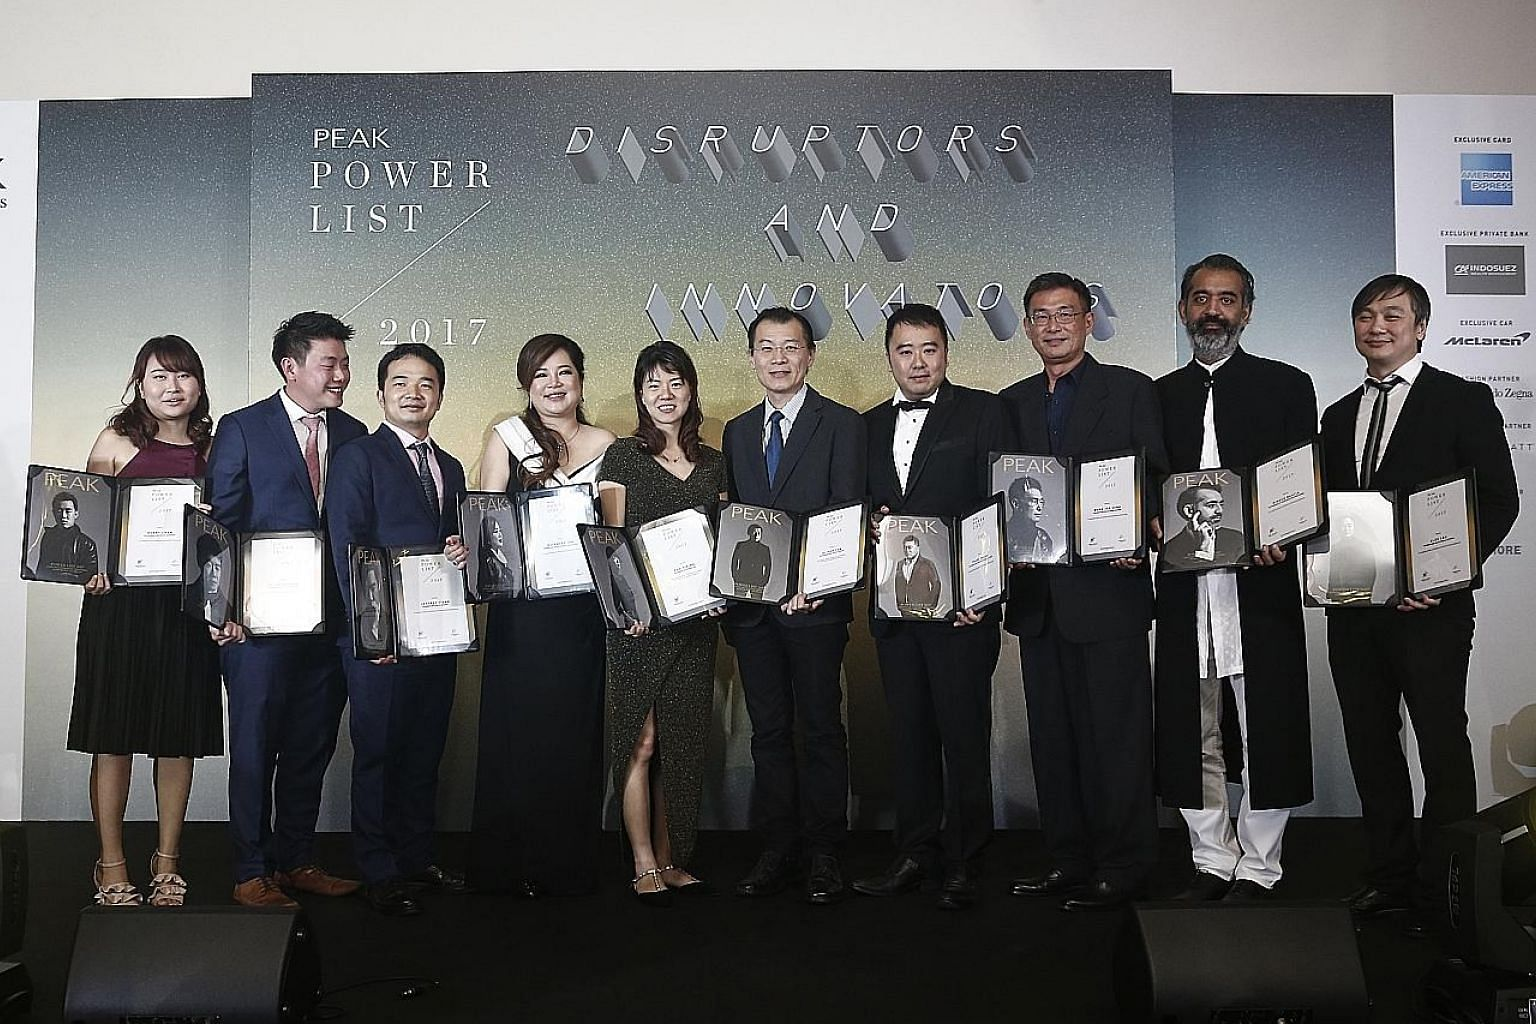 Ten leading innovators and disrupters were honoured in The Peak magazine's Power List 2017 at the Grand Hyatt Singapore last night. Change was the theme of the night, and those honoured included Mr Wong Joo Seng, founder and chief executive officer o